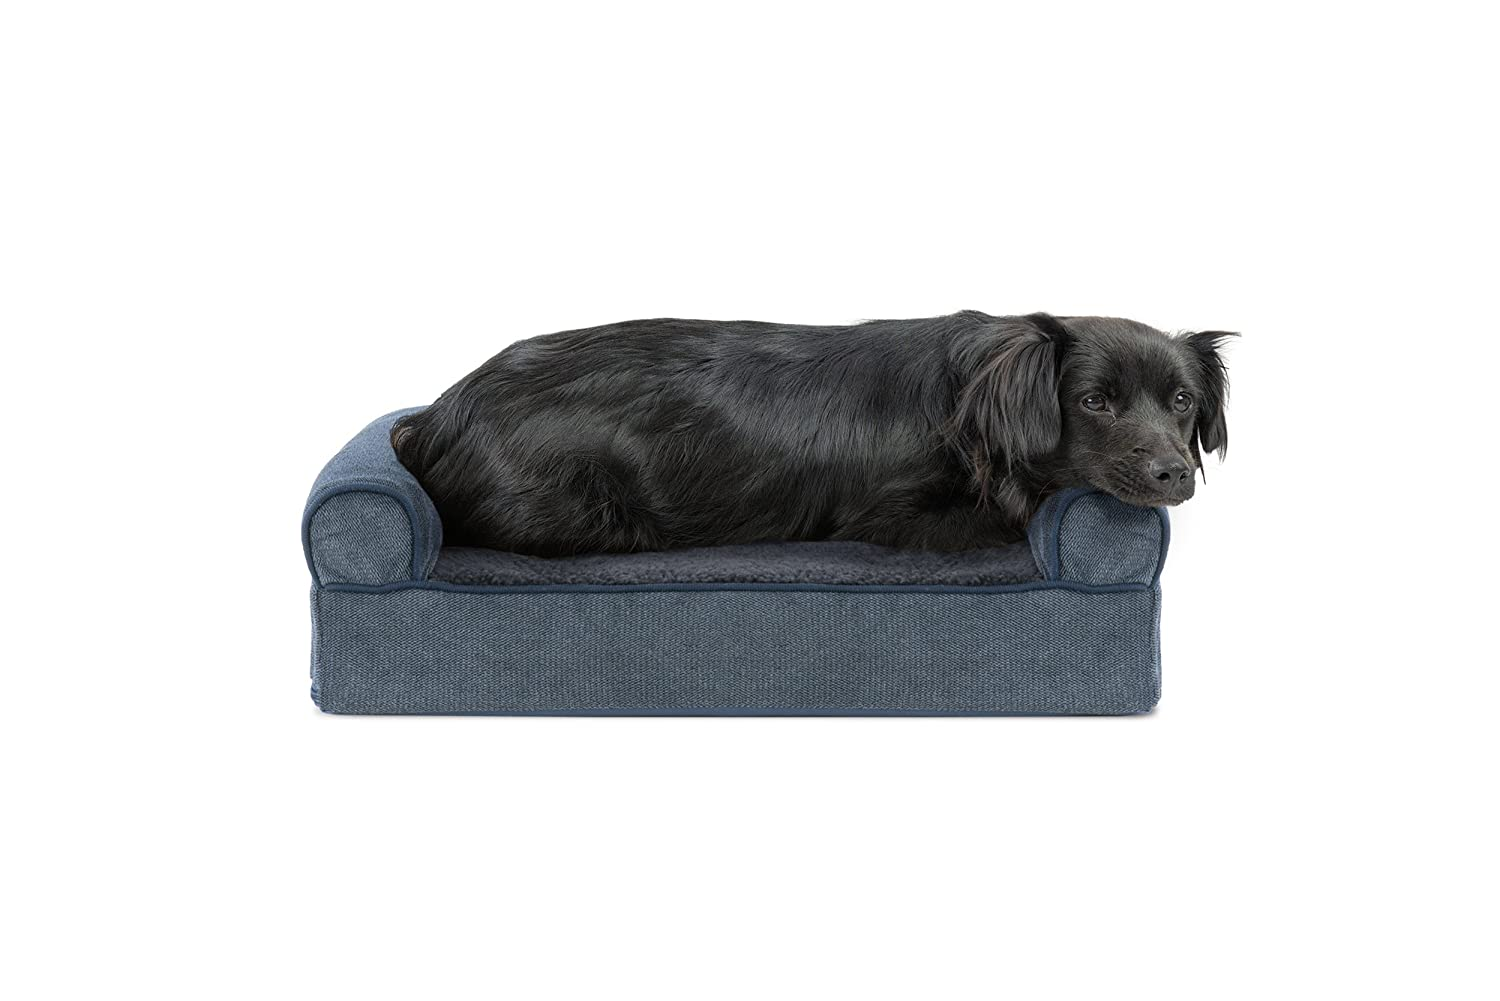 Orion bluee Small Orion bluee Small FurHaven Gel Foam Faux Fleece & Chenille Dog Couch Sofa Bed for Dogs and Cats, Orion bluee, Small